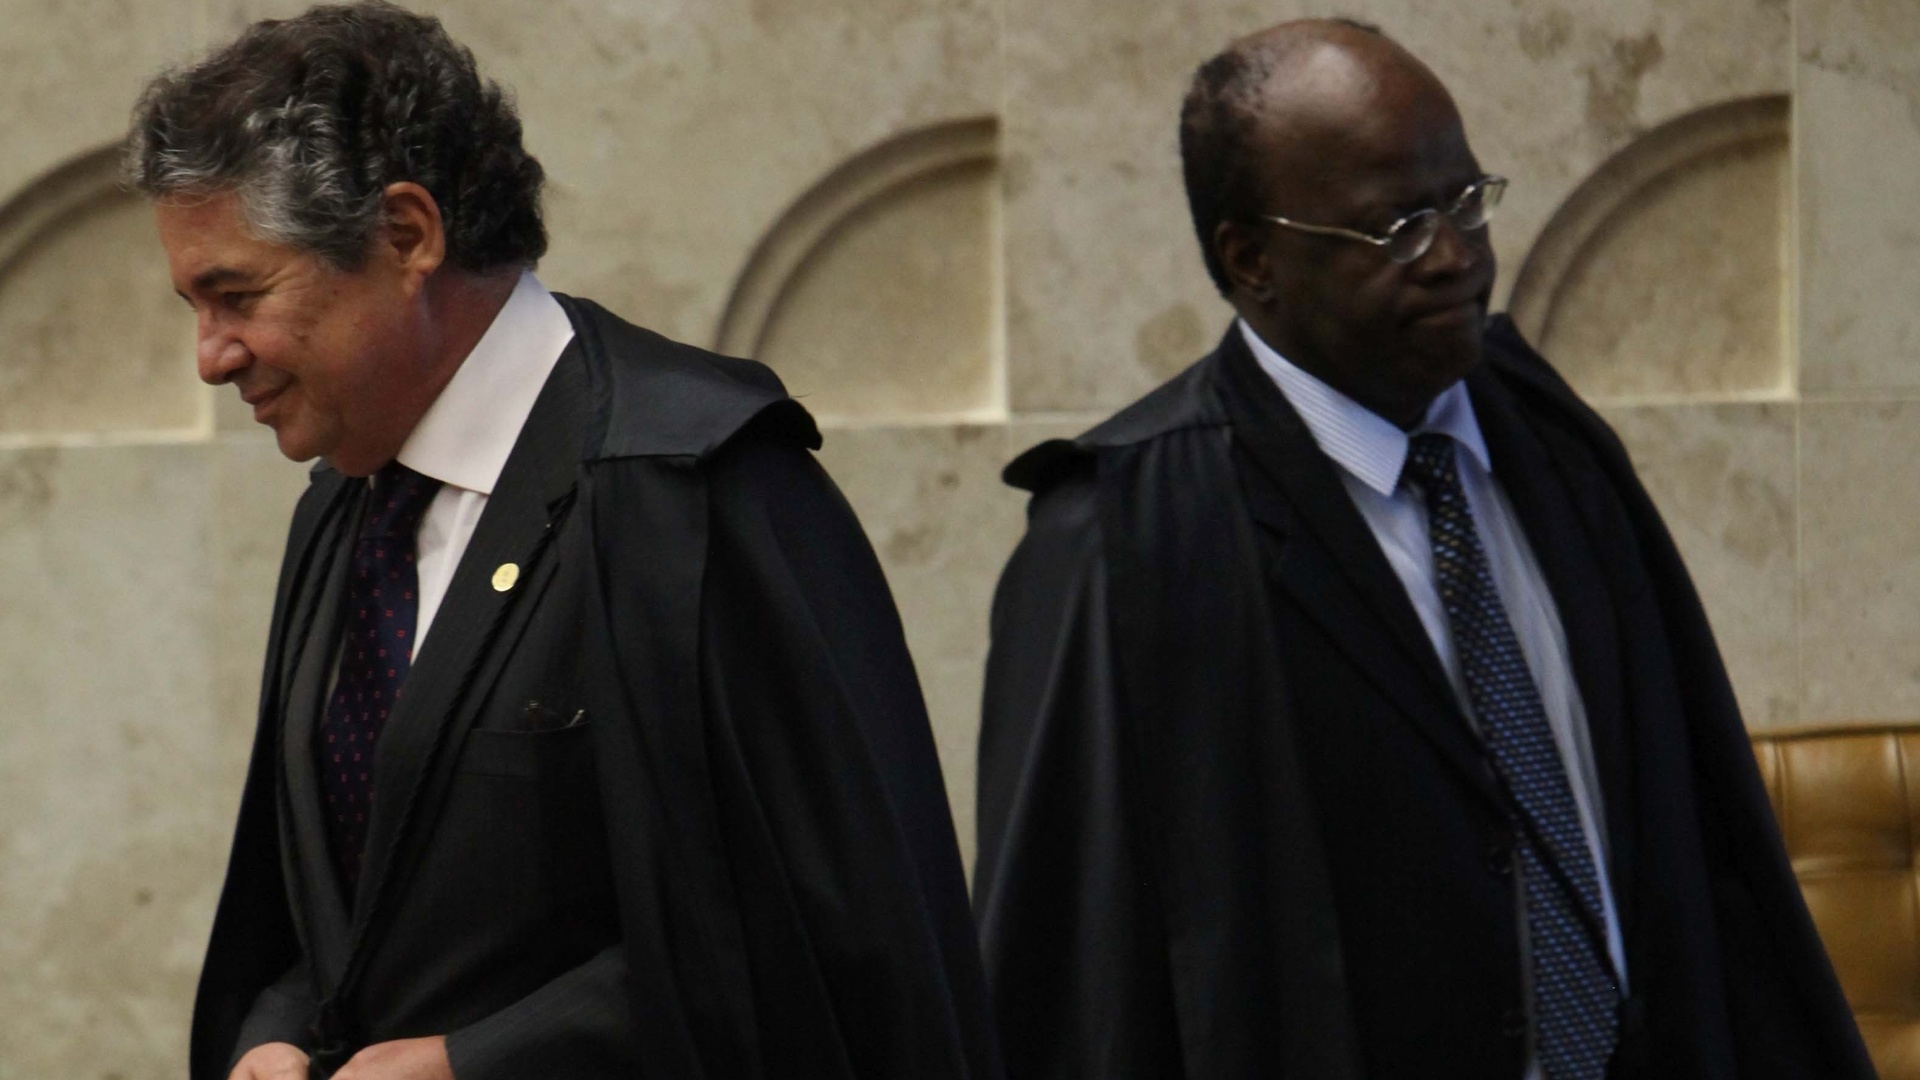 8.nov.2012 - Os ministros Marco Aurlio Mello e Joaquim Barbosa chegam para sesso do julgamento do mensalo no STF (Supremo Tribunal Federal), em Braslia